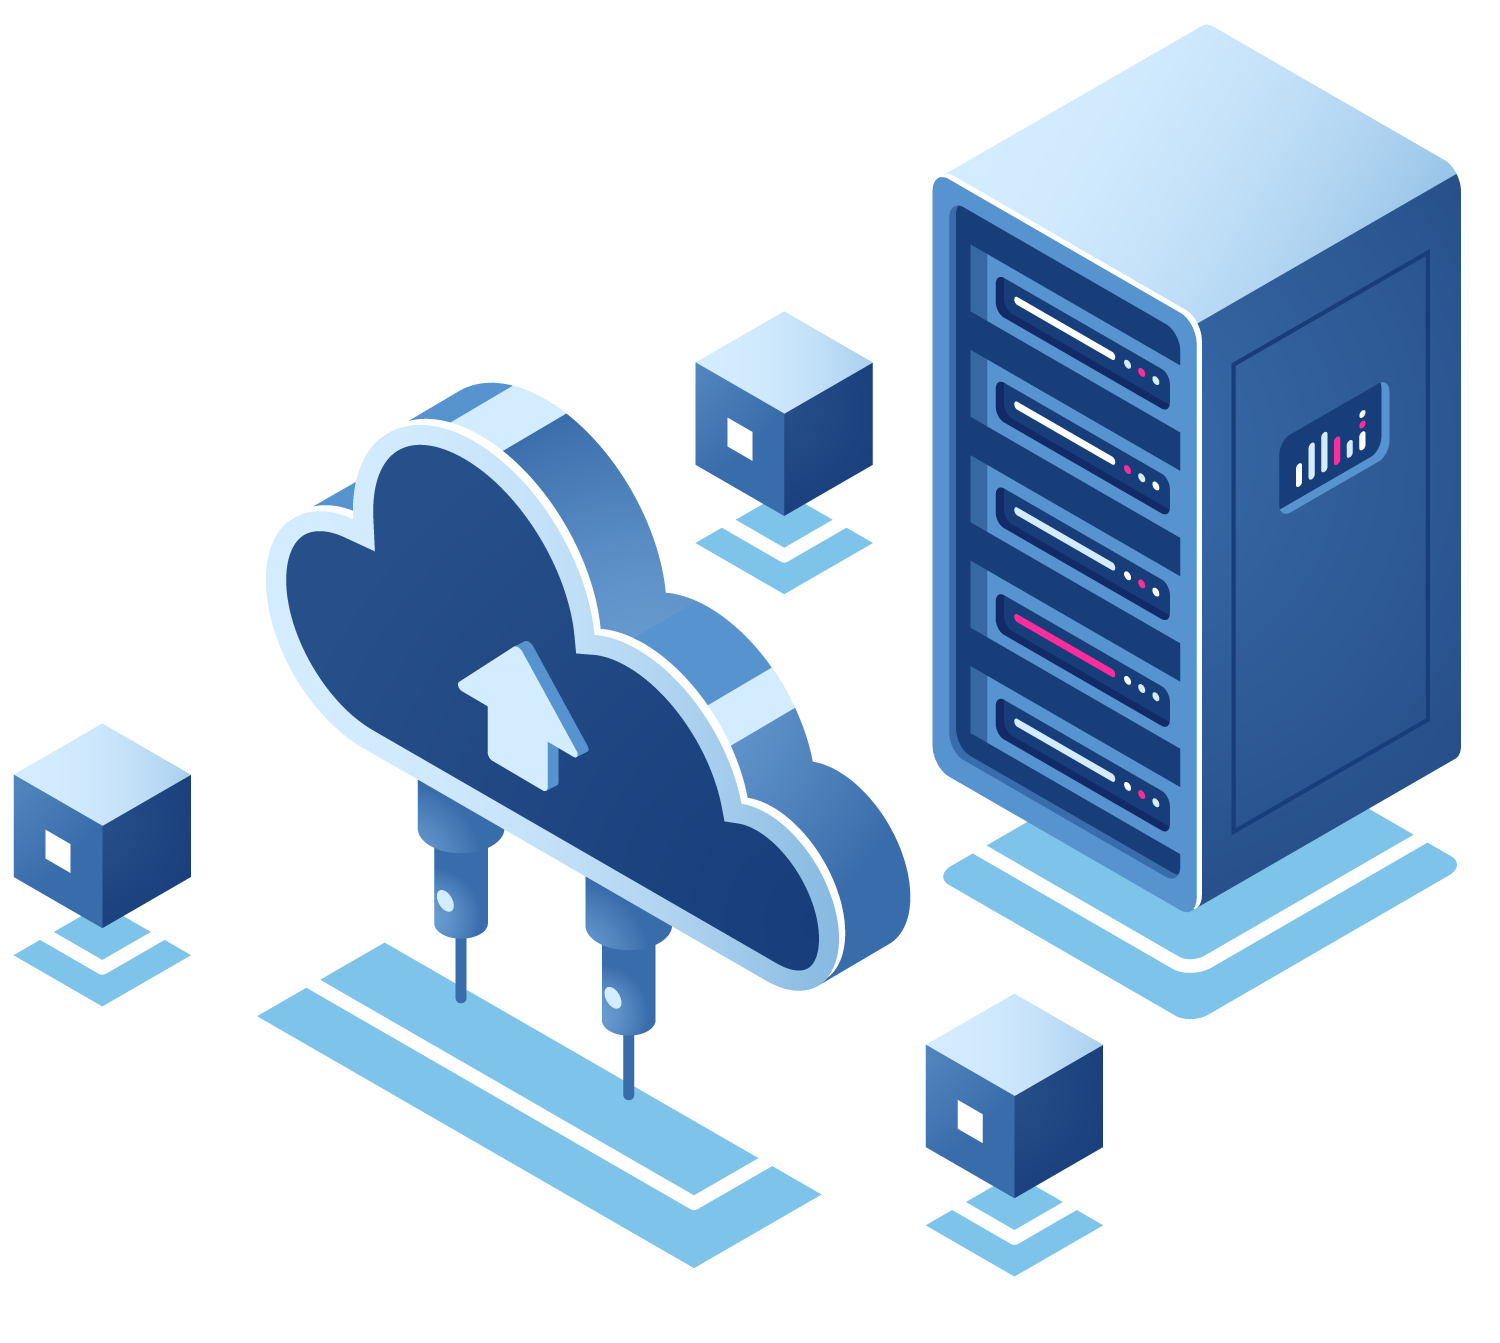 ownCloud.online - The most secure cloud storage